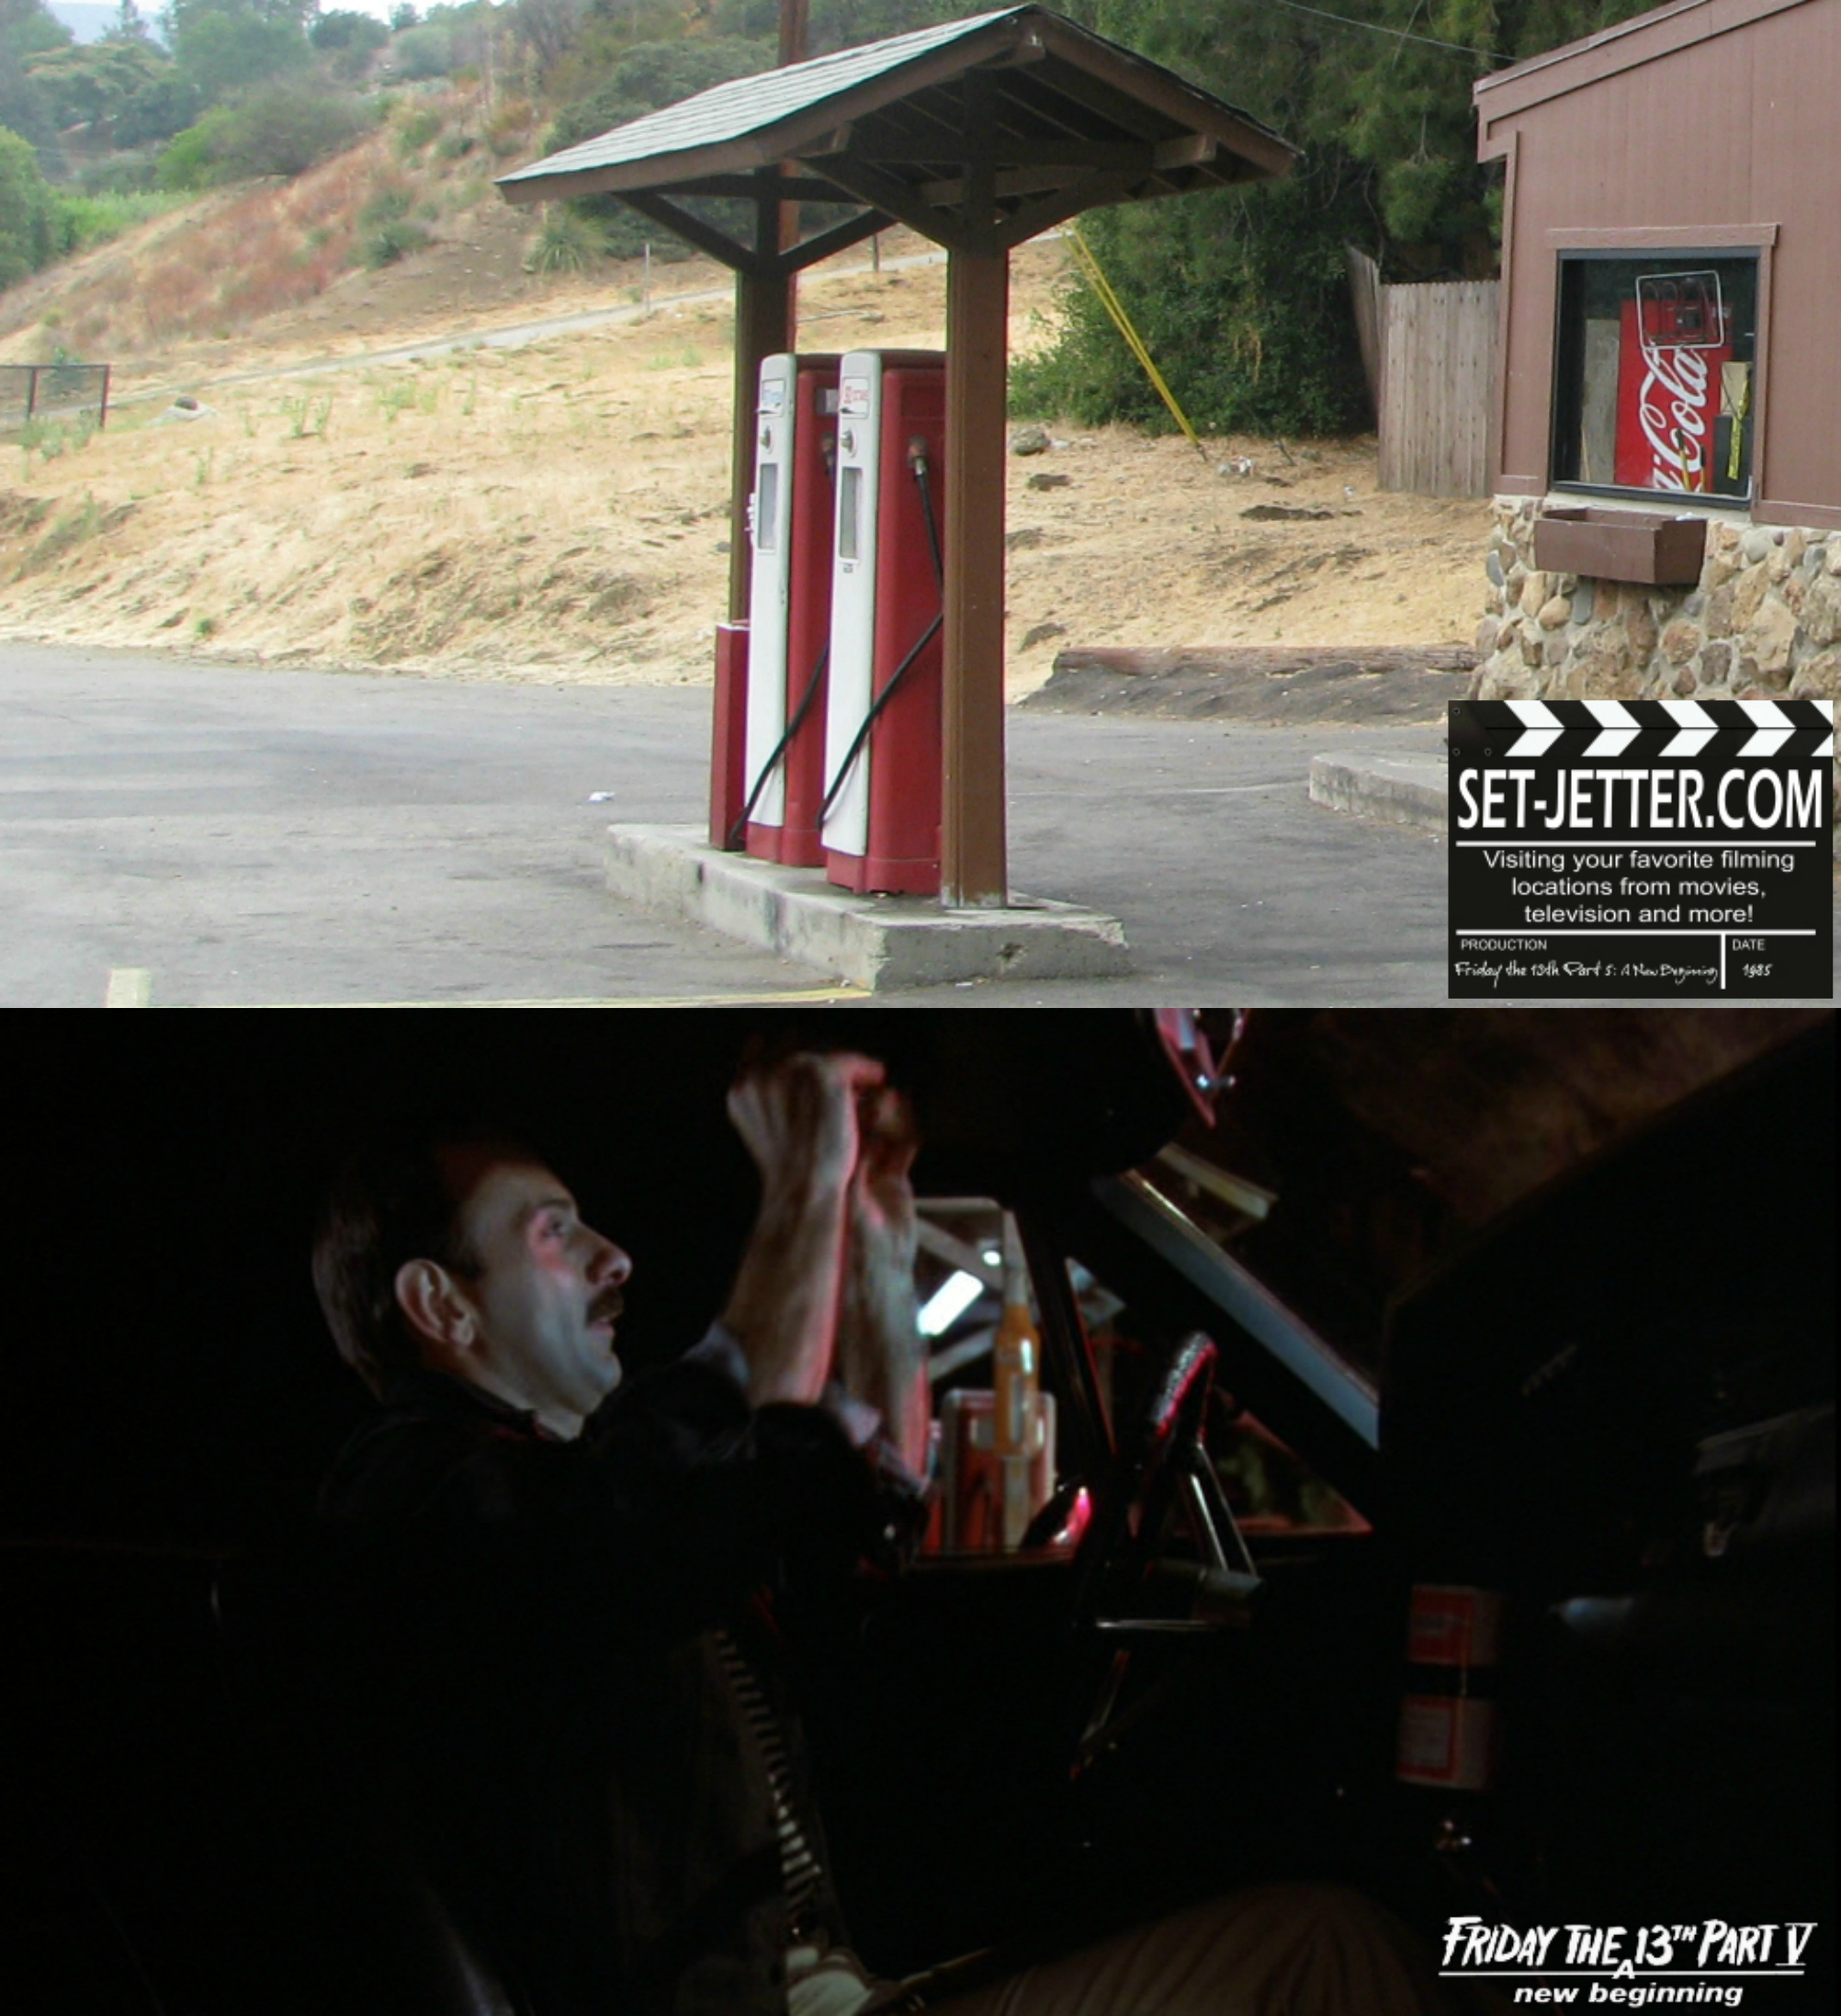 Friday the 13th Part V comparison 10.jpg